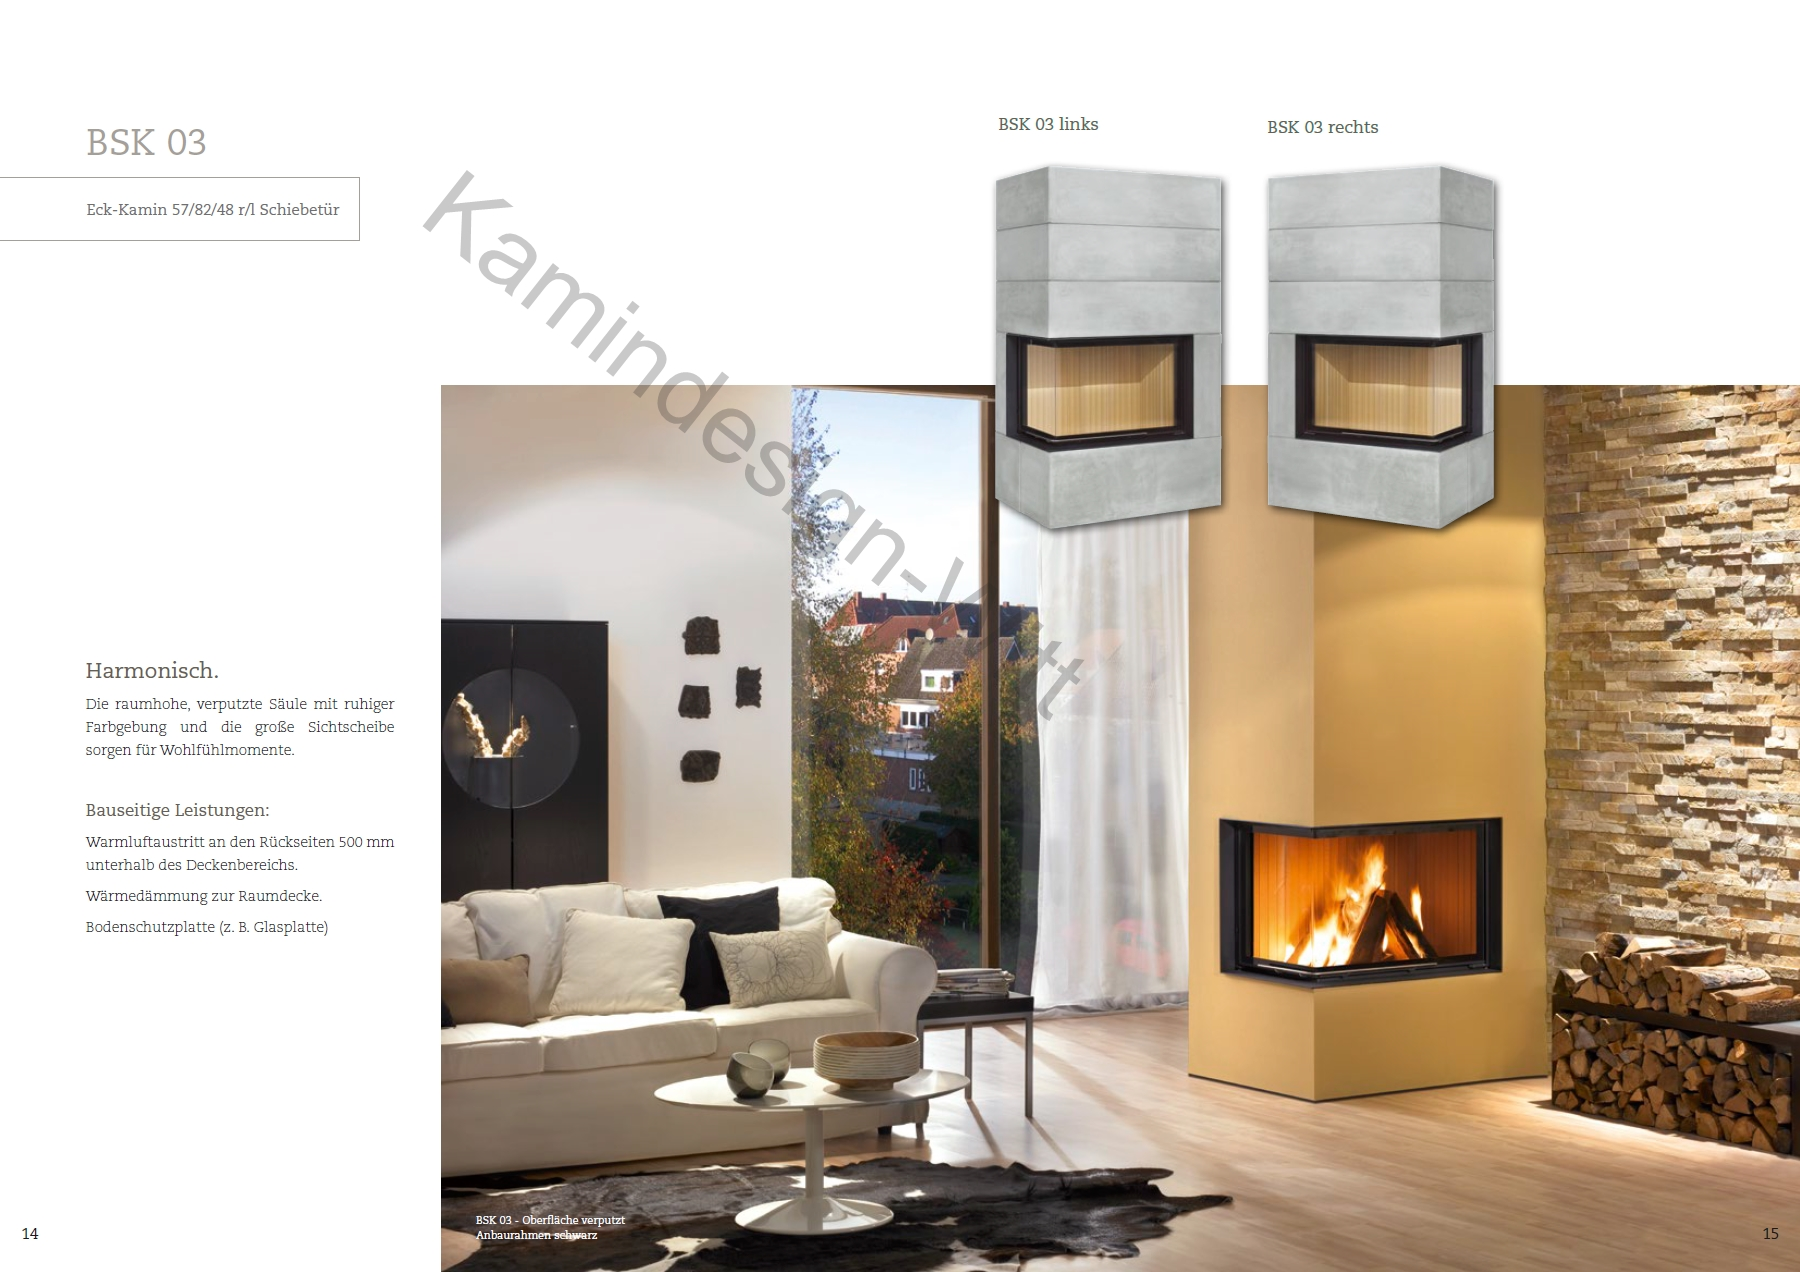 kamin selber bauen mit einem brunner systemkamin hotline 7 21 uhr 0177 530 9030. Black Bedroom Furniture Sets. Home Design Ideas